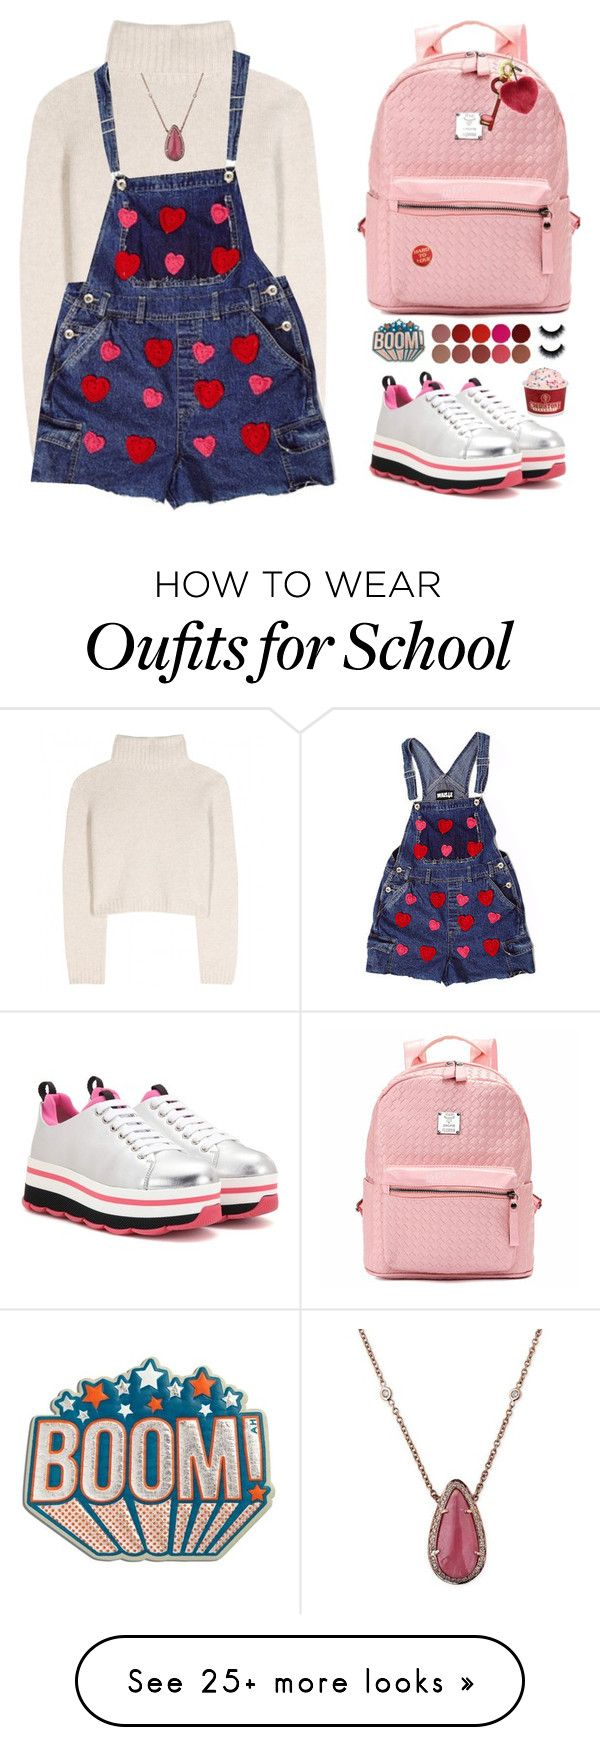 """""""Dayla"""" by toppingu on Polyvore featuring The Row, Prada, Helen Moore, Anya Hindmarch and Charlotte Tilbury"""